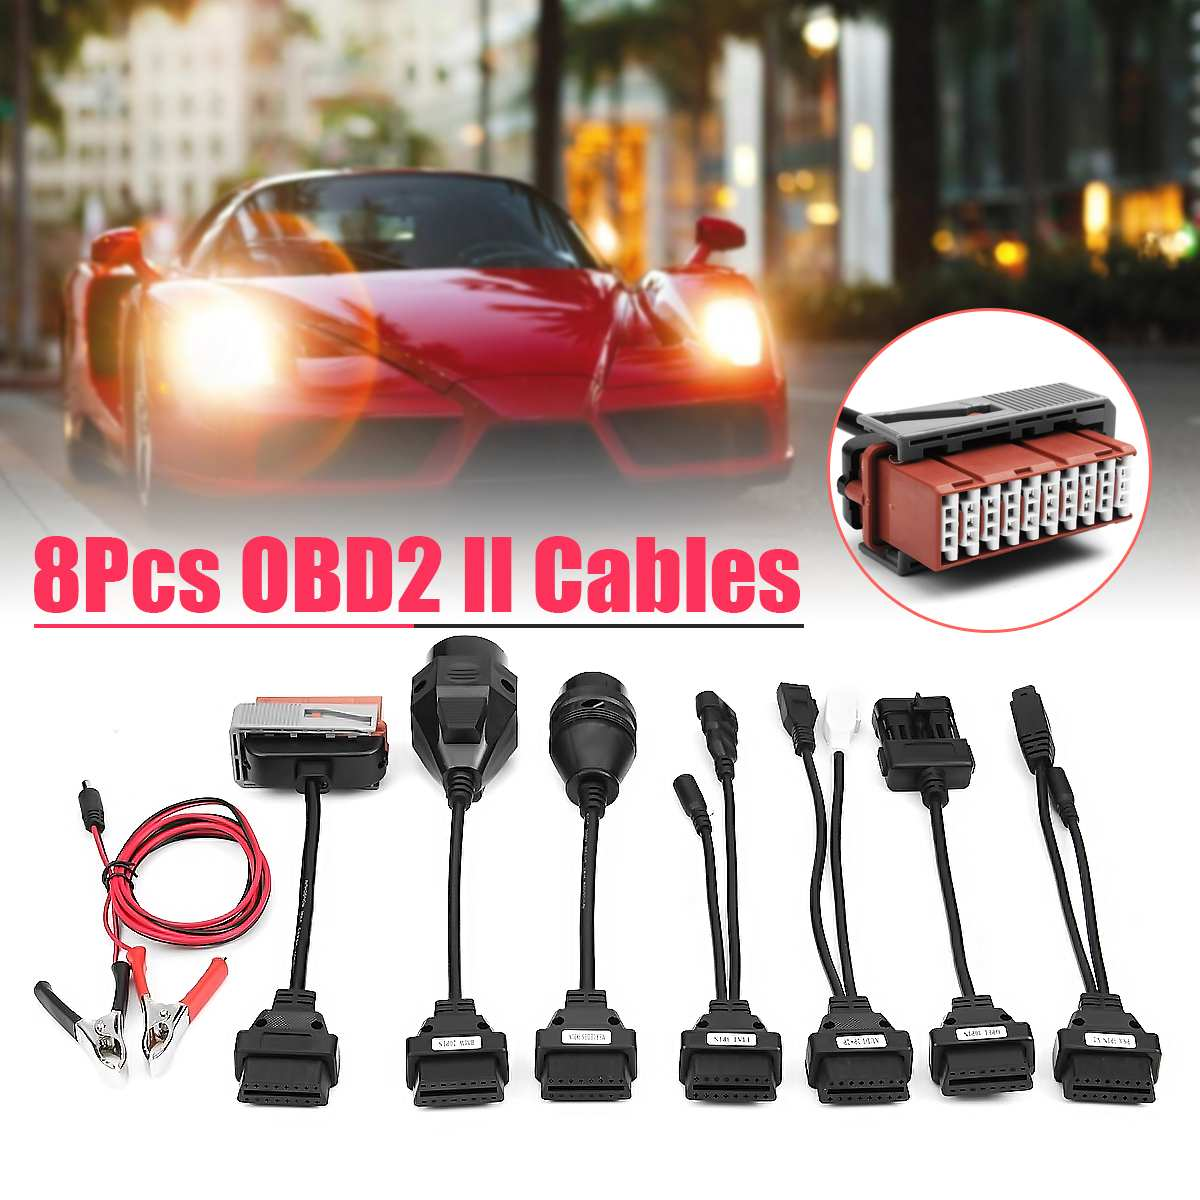 8Pcs Vollen Satz Auto Lkw Kabel Auto Kabel Diagnose Werkzeug OBD2/OBD1 Auto Kabel Diagnose Adapter Stecker